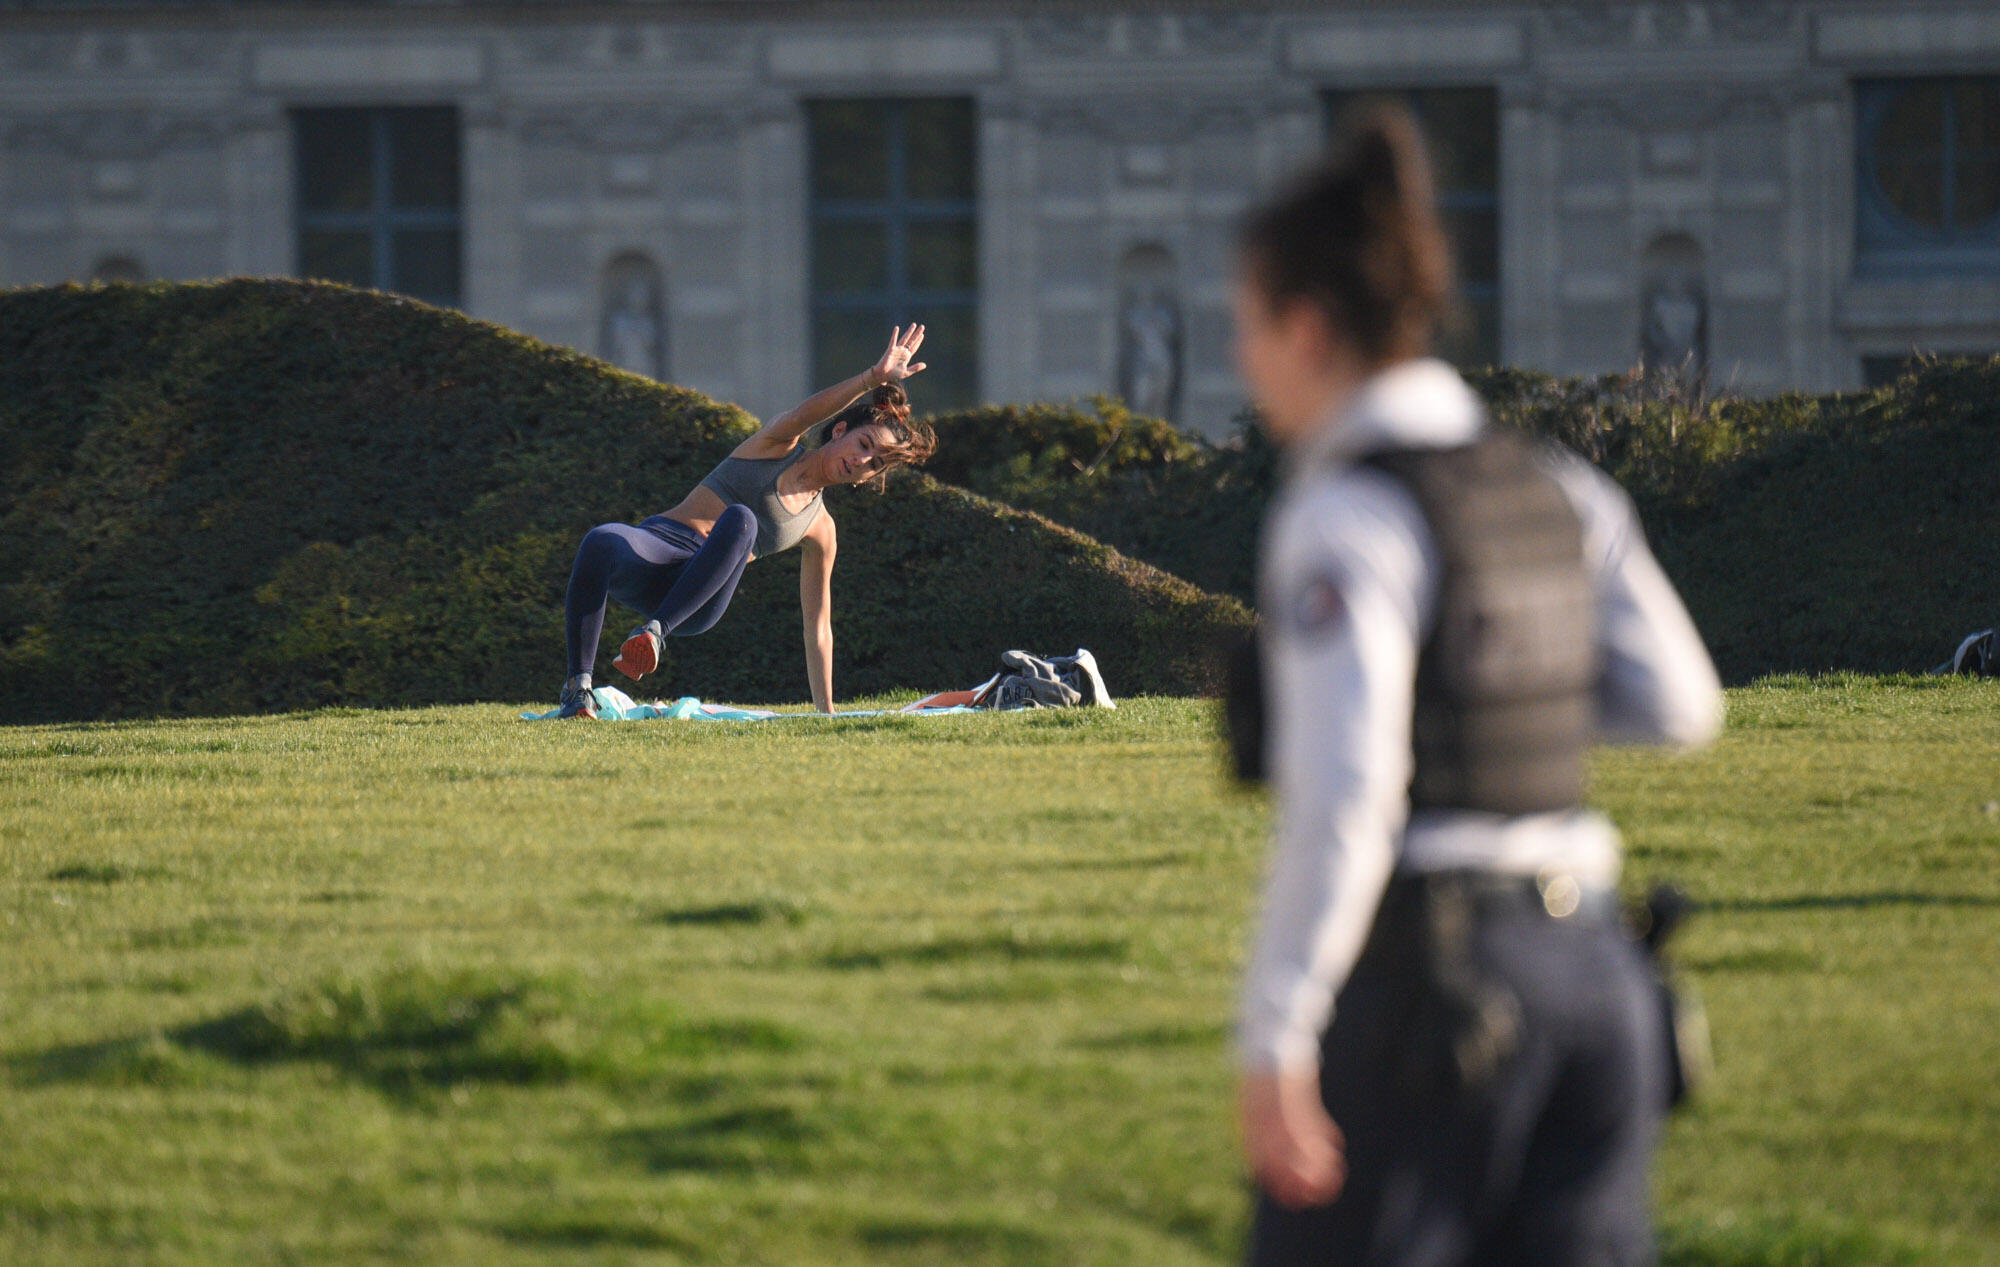 The French lockdown is not as tight as those in Italy or Spain. For example, people are allowed to go out for one hour of physical activity as long as they remain within one kilometre of their homes.